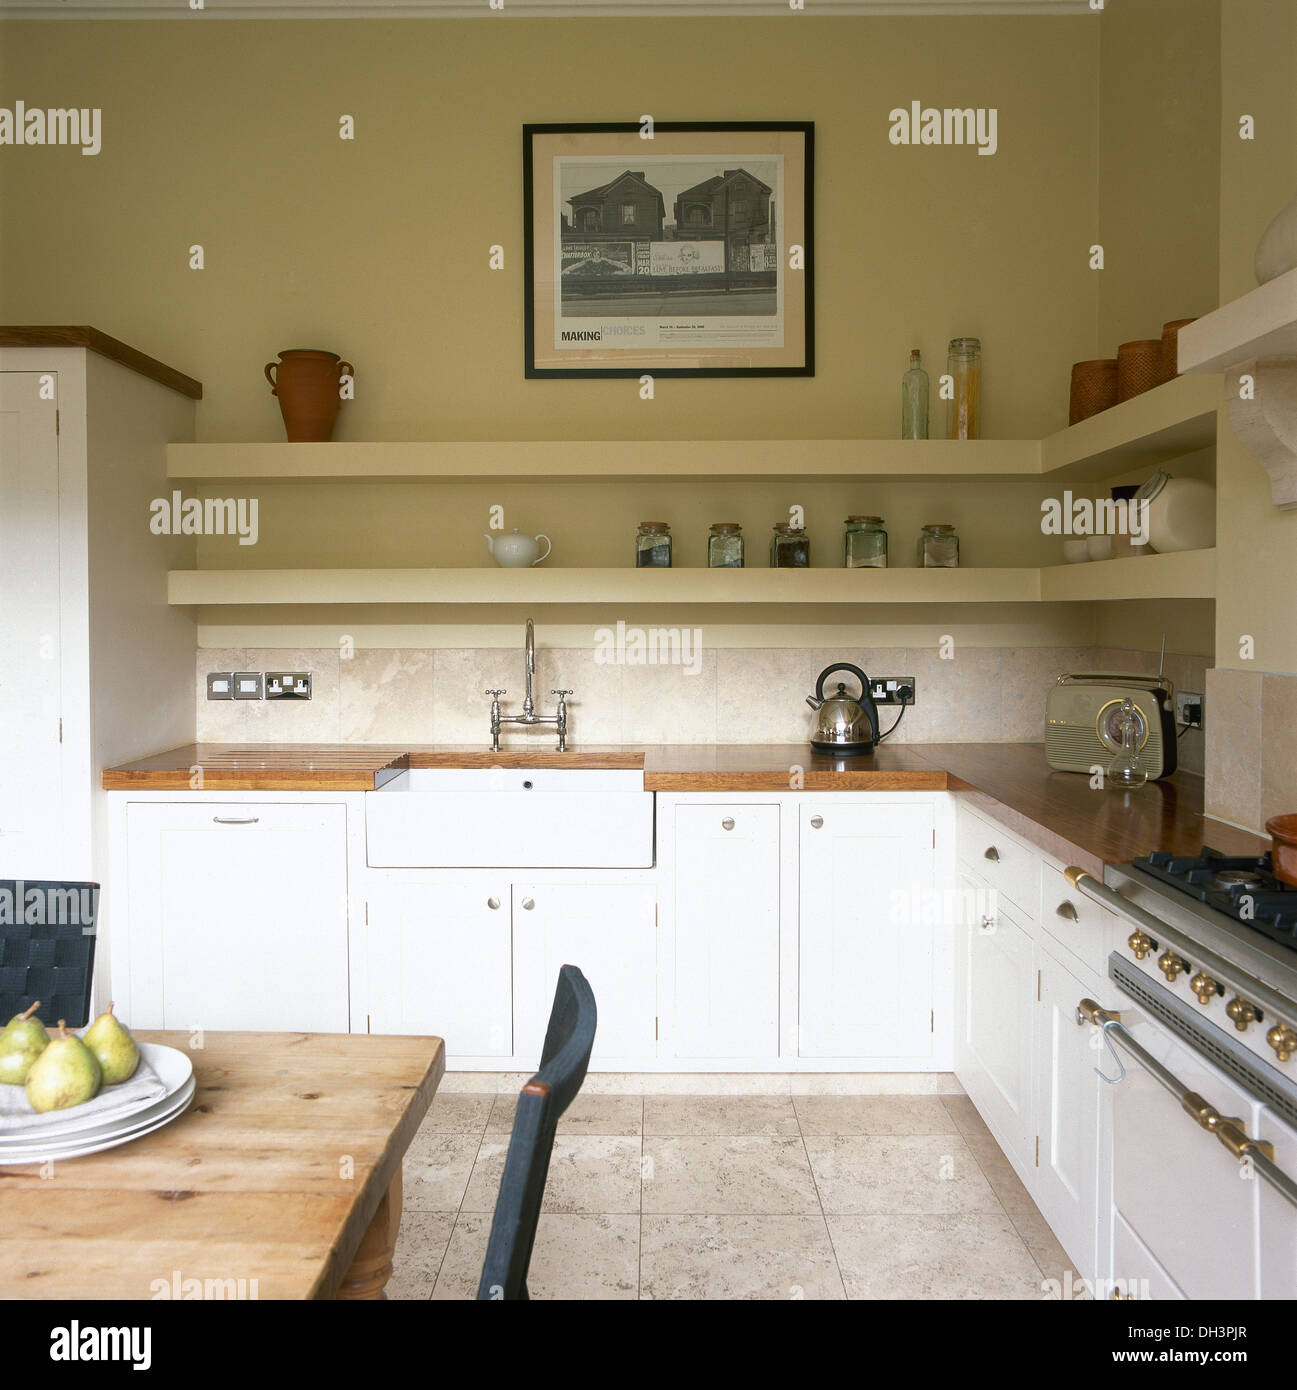 Framed Photograph Above Simple Shelving And Belfast Sink In Country Kitchen With White Painted Units Plain Wood Dining Table